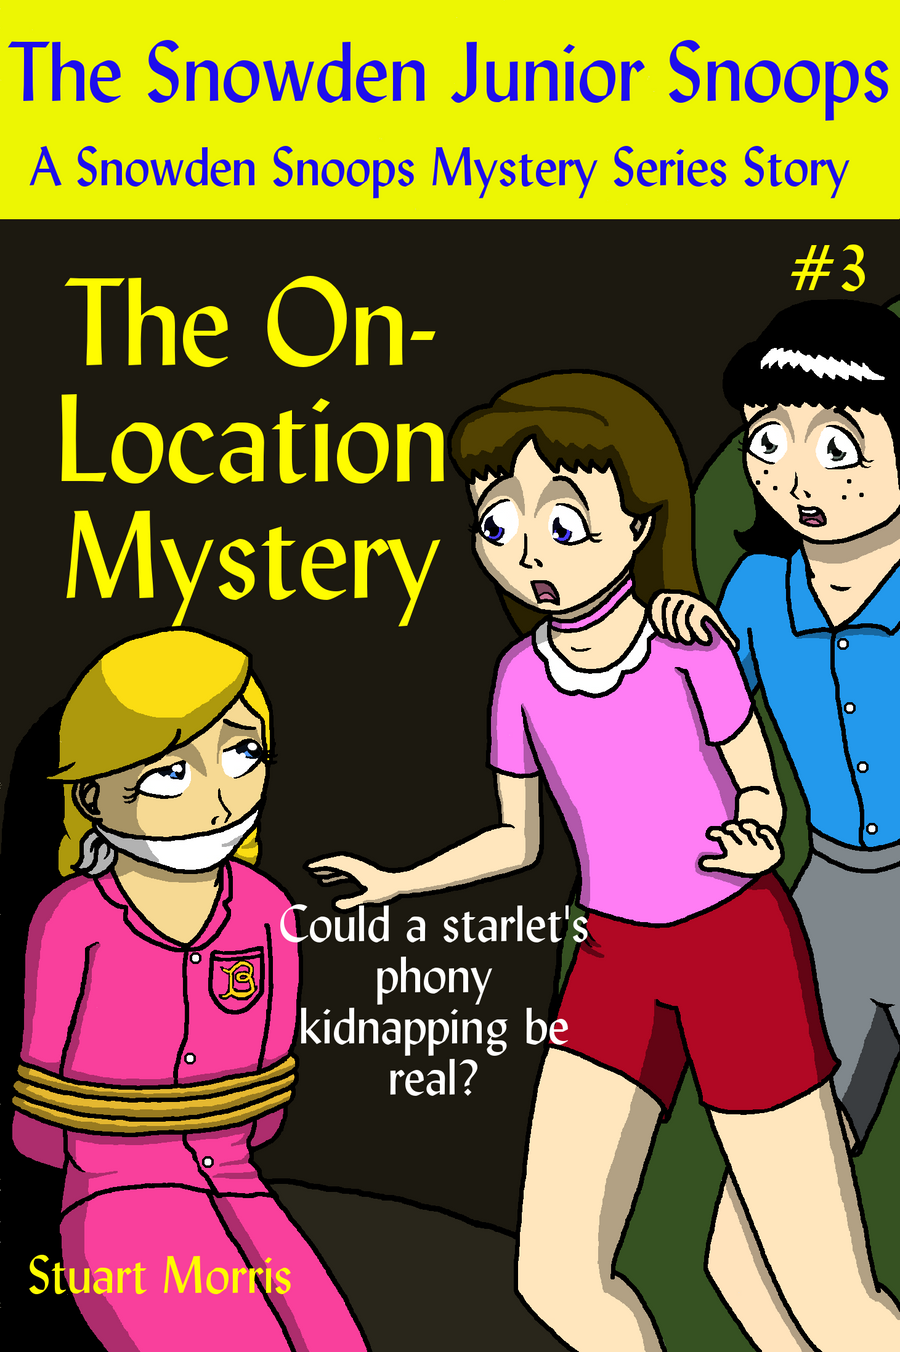 On-Location Mystery Book Cover by MisterMistoffelees